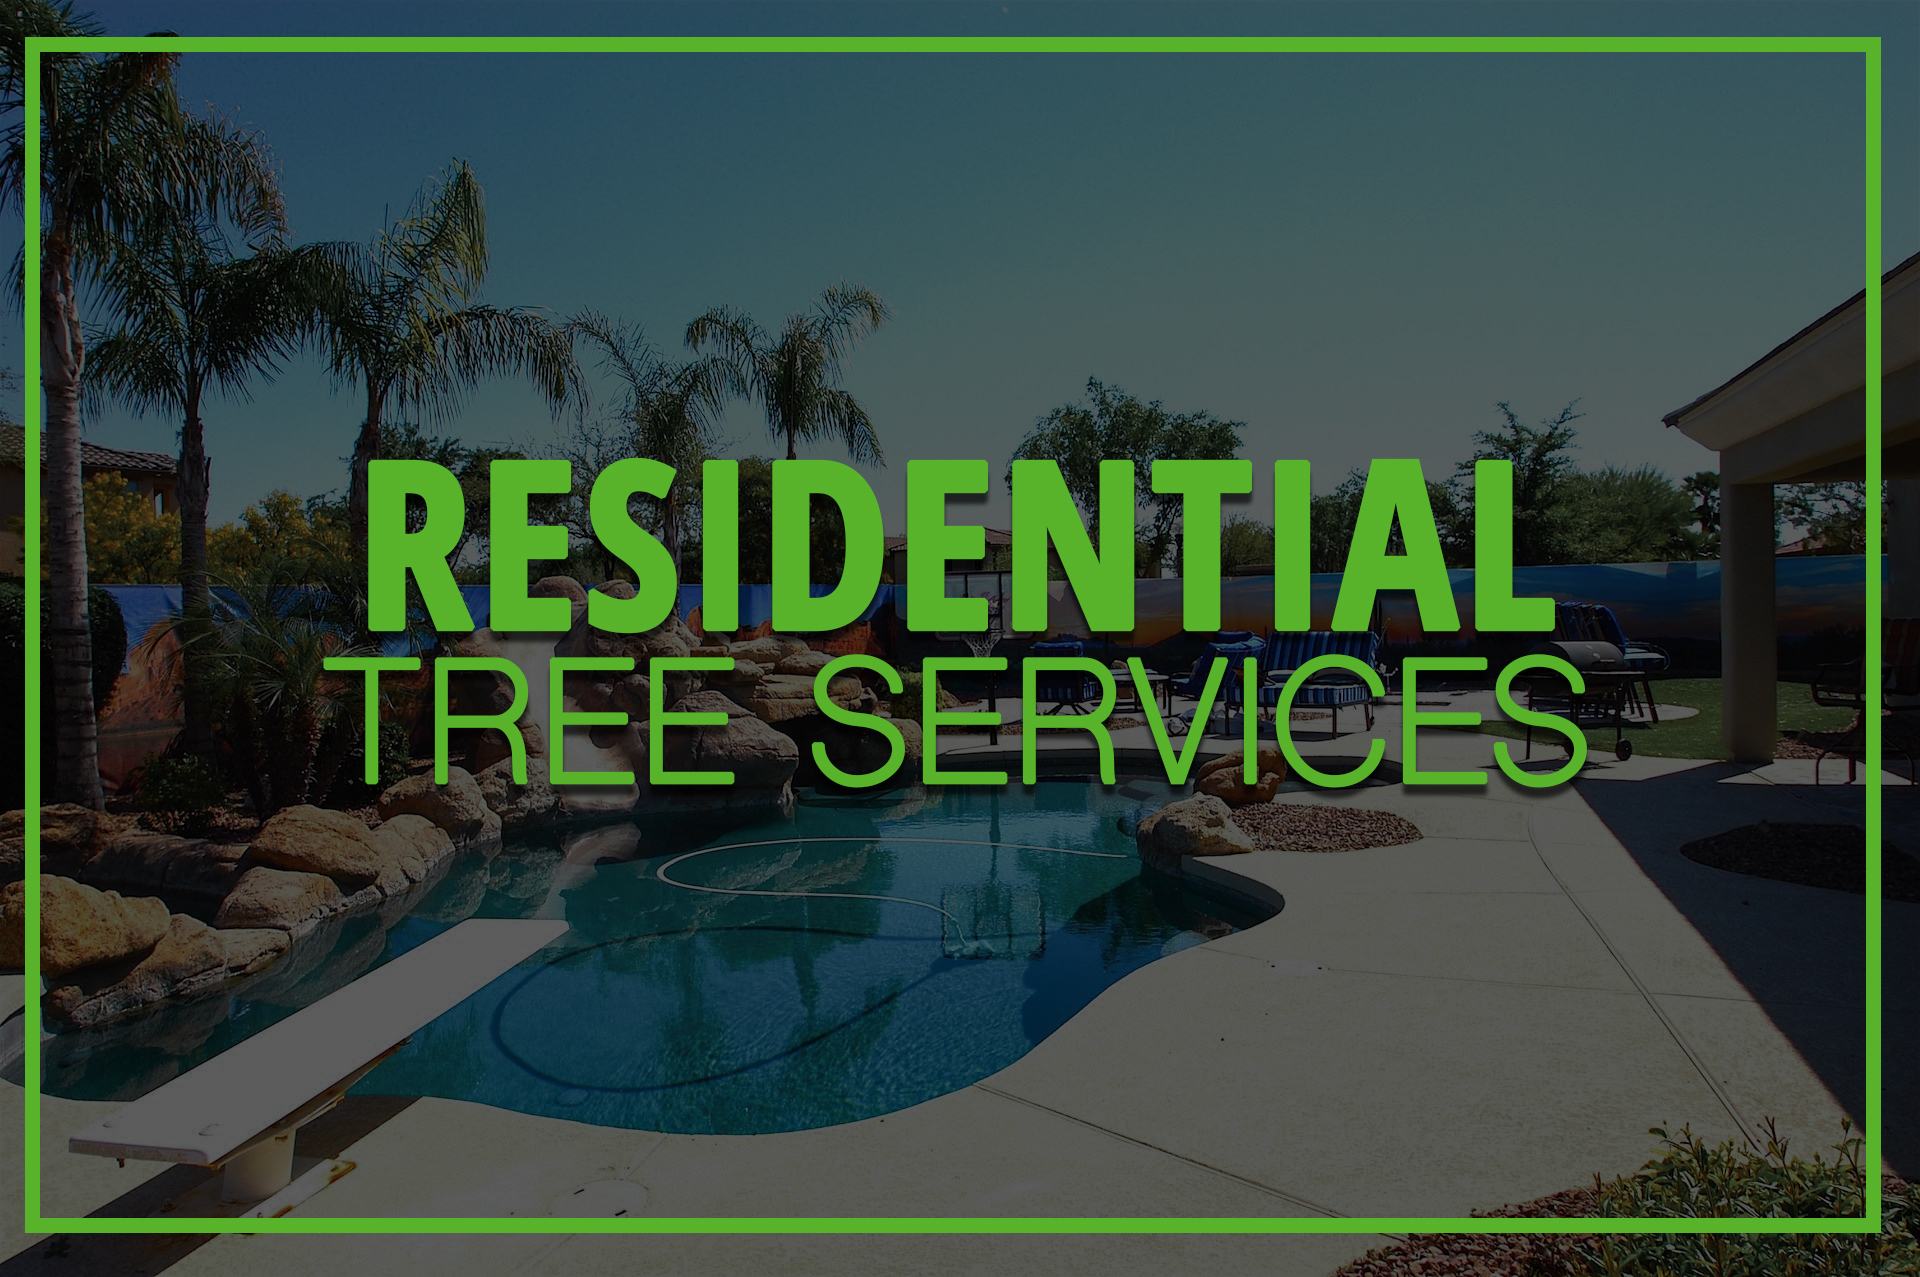 Residential Tree service Riverside